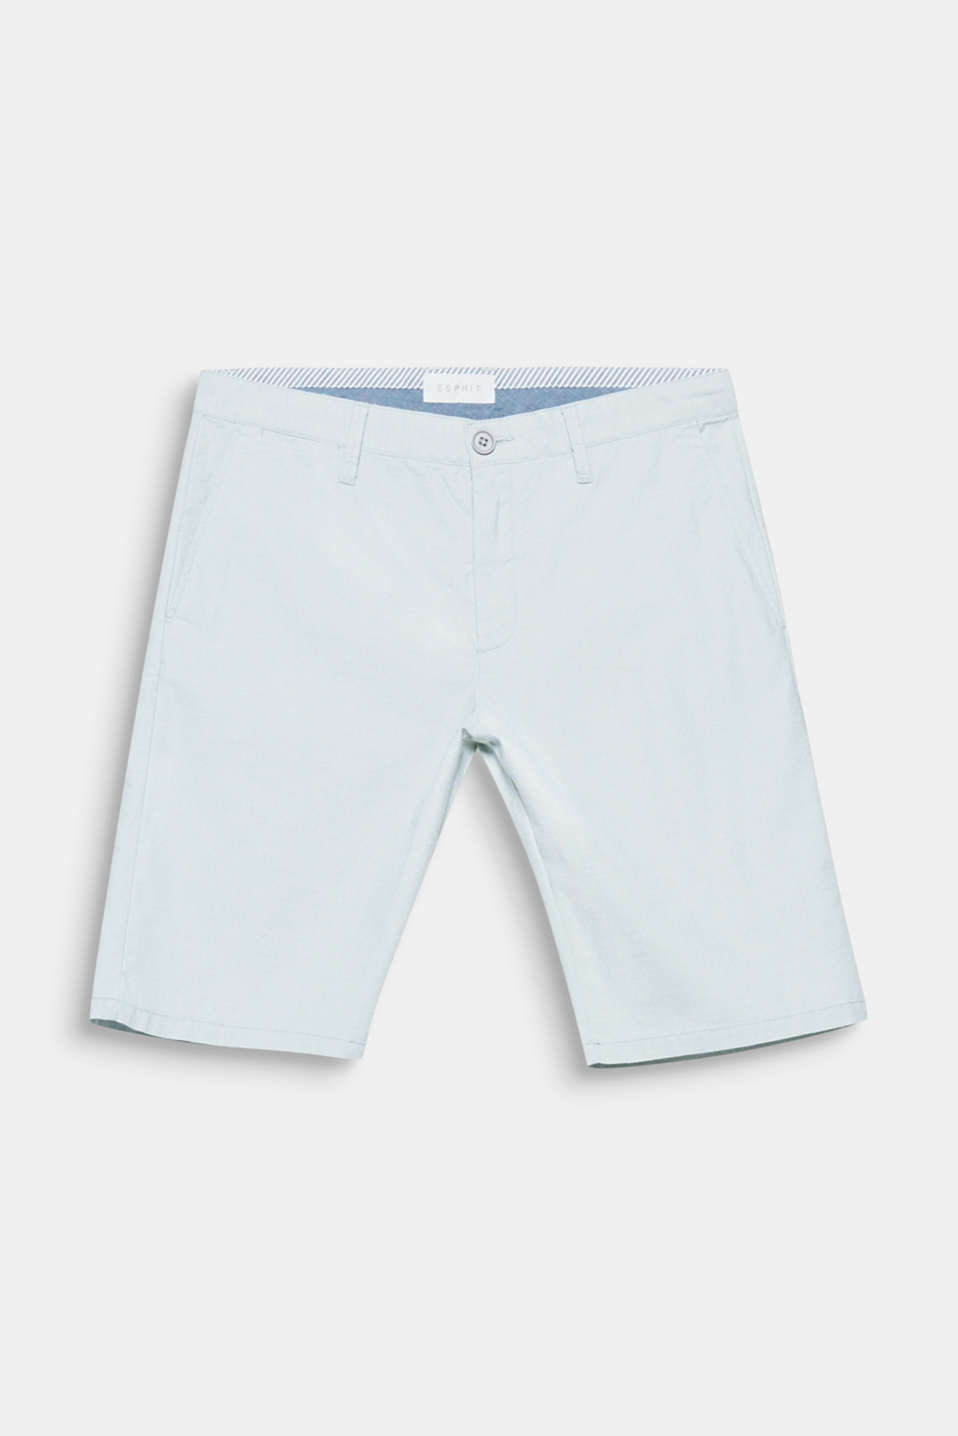 The fine polka dot pattern gives these chino shorts a fine and elegant look.